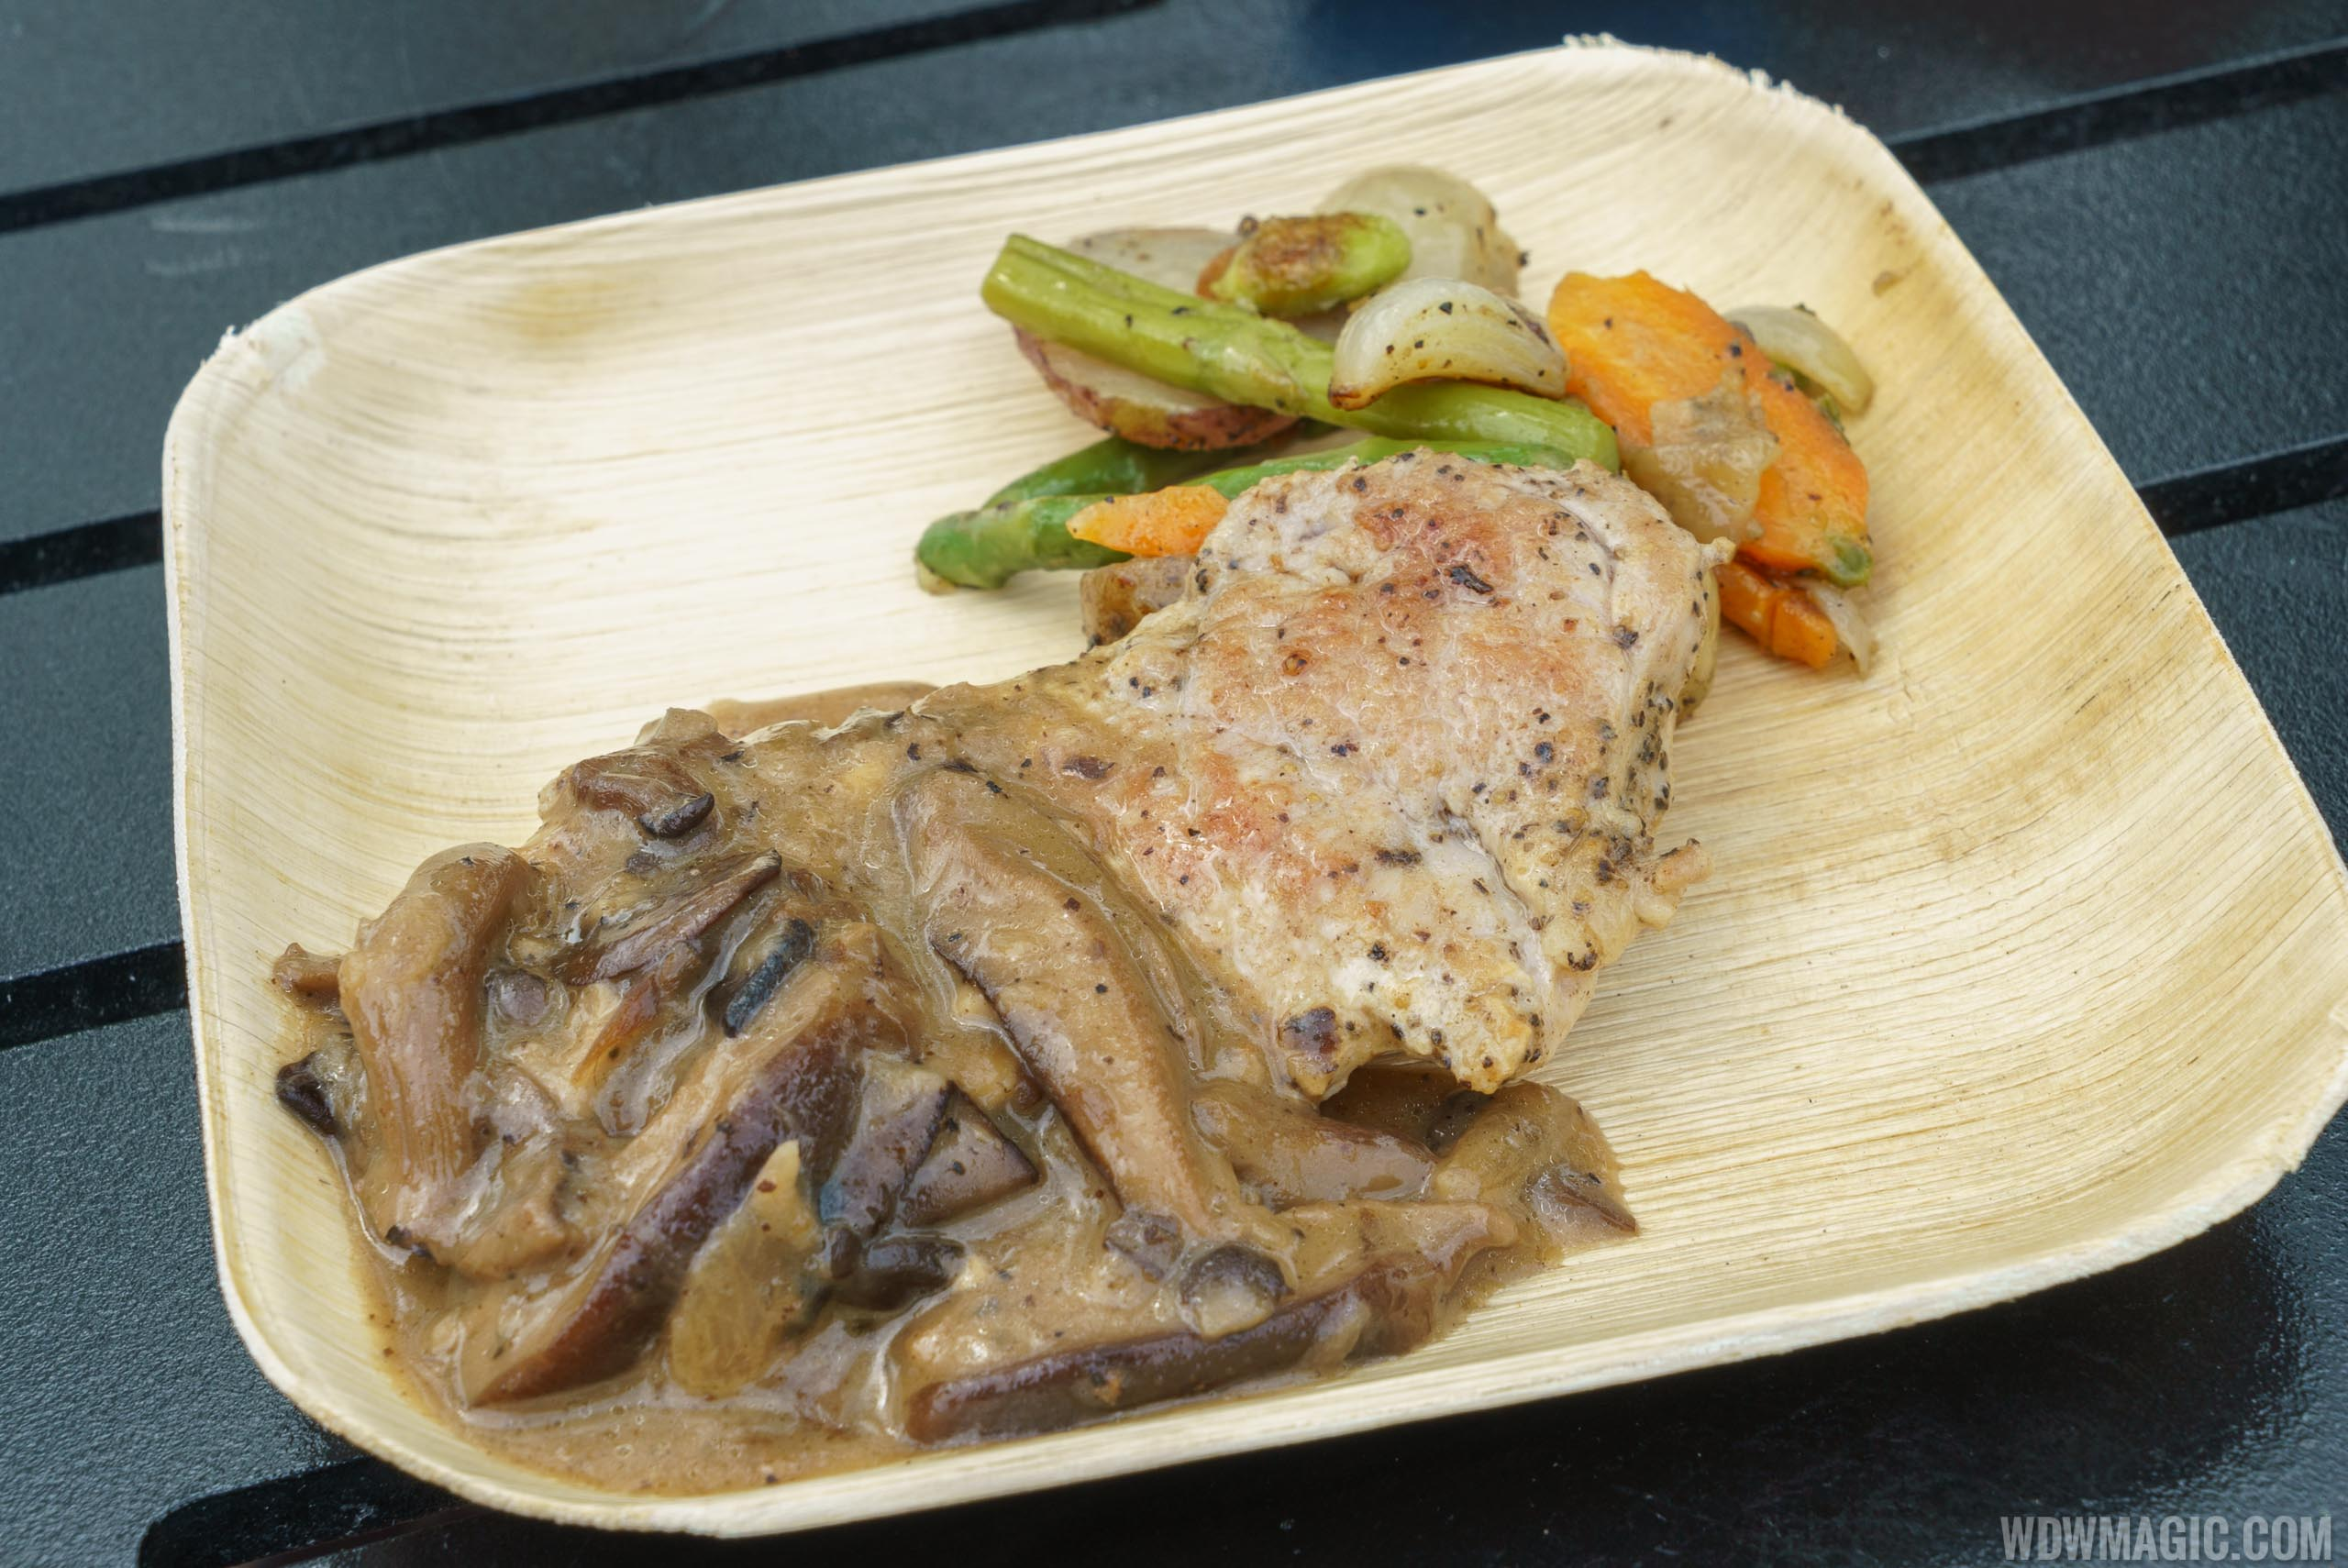 2016 Epcot Flower and Garden Festival Outdoor Kitchen - Urban Far Eats - Seared Pork Tenderloin